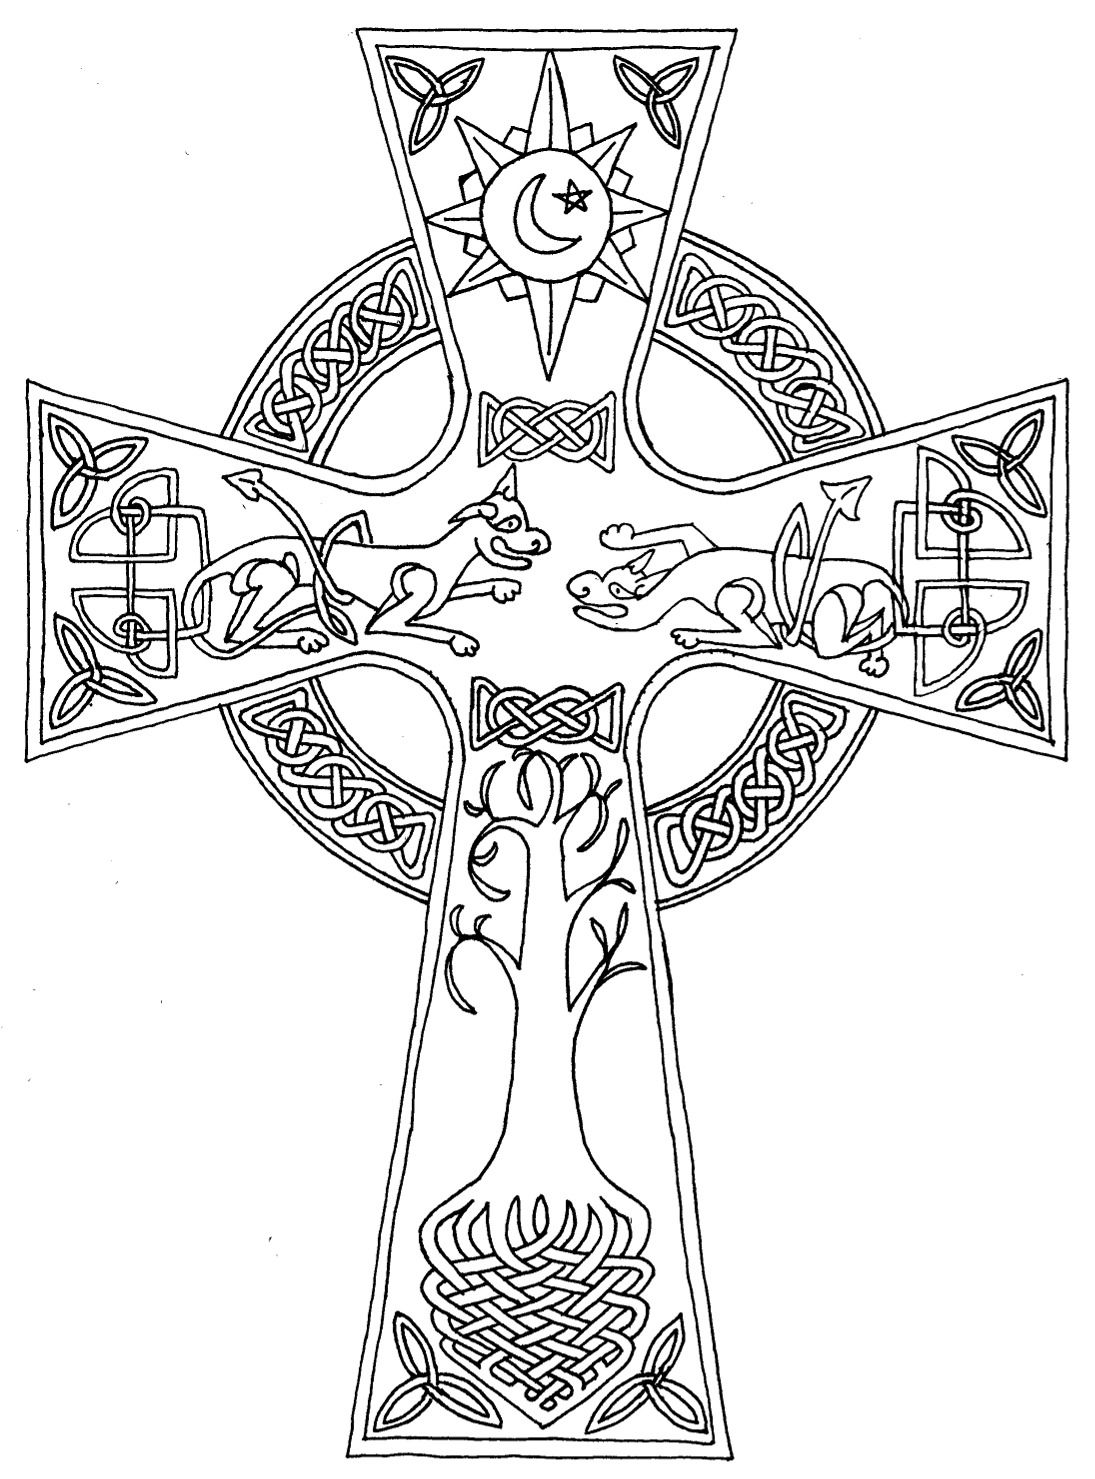 celtic-cross-coloring-pages-16.jpg